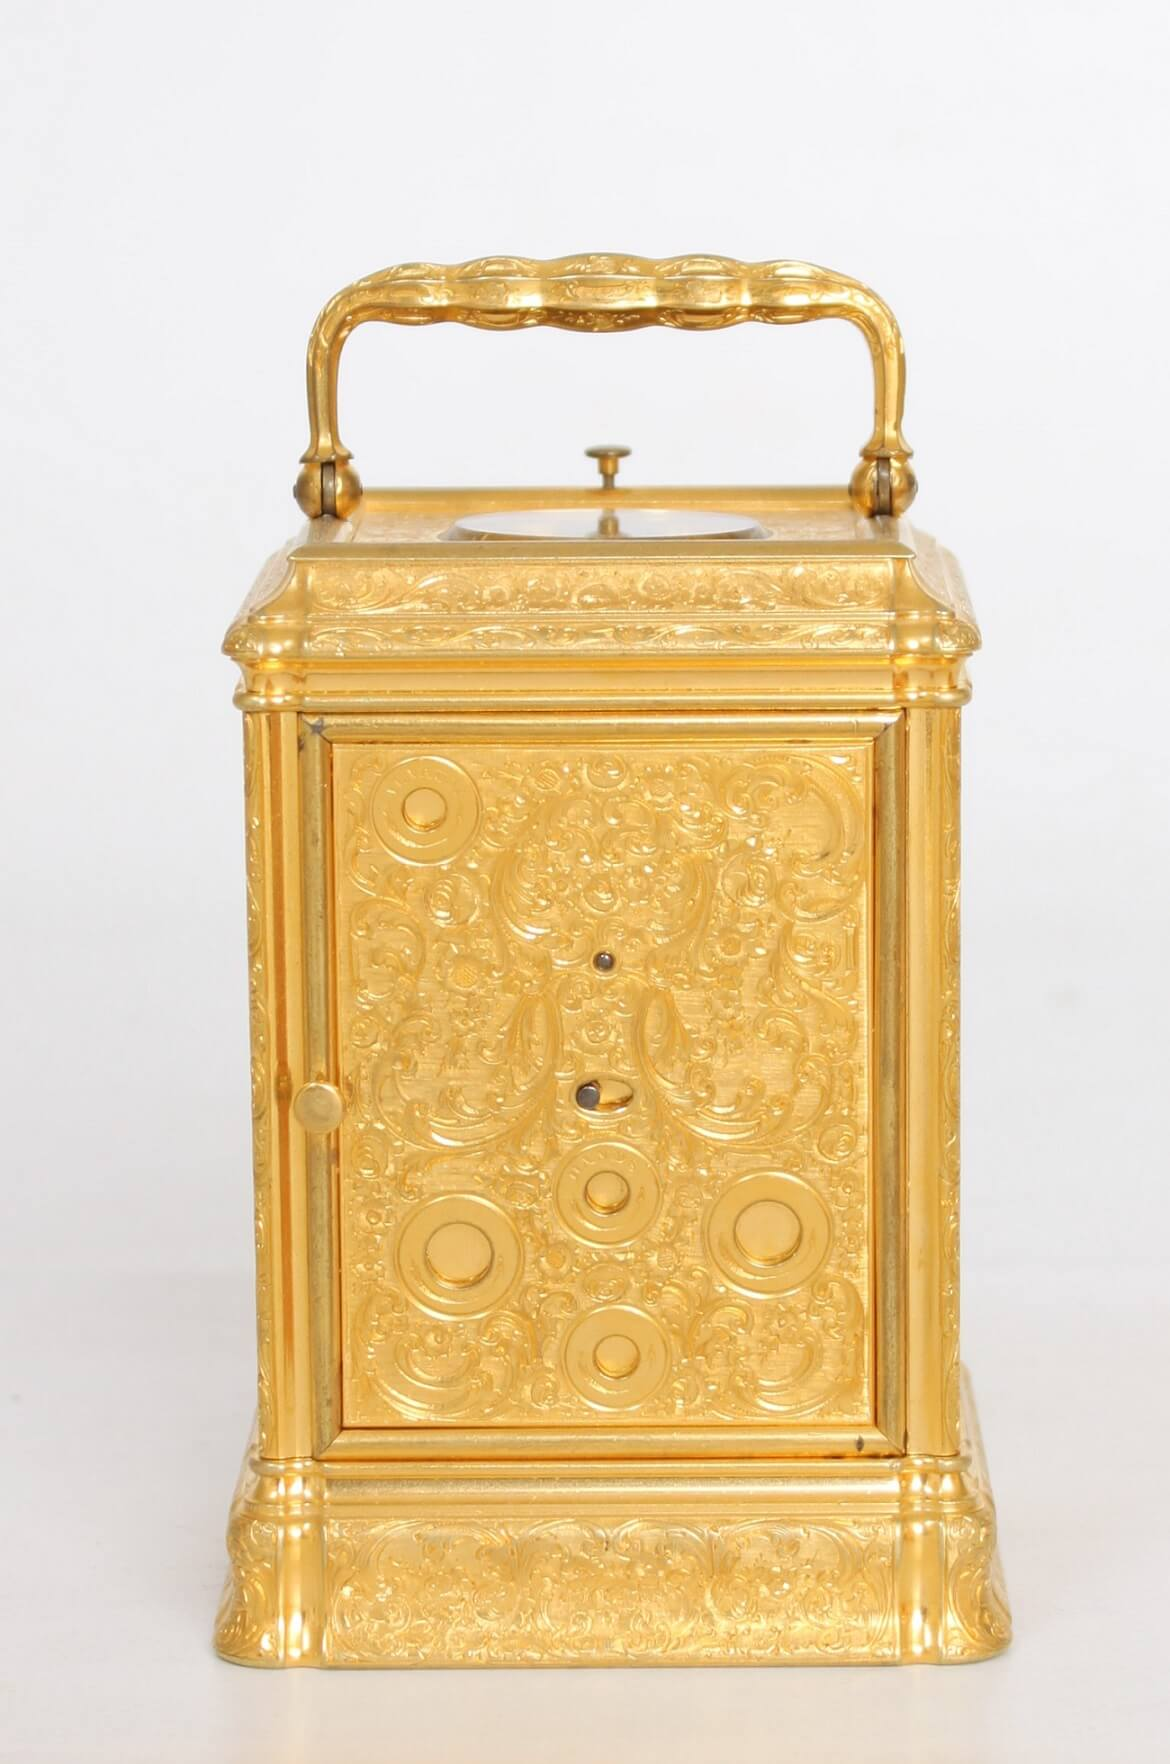 English-gorge Case-carriage Clock-quarter Repeating-Dent-gilt Brass-engraved